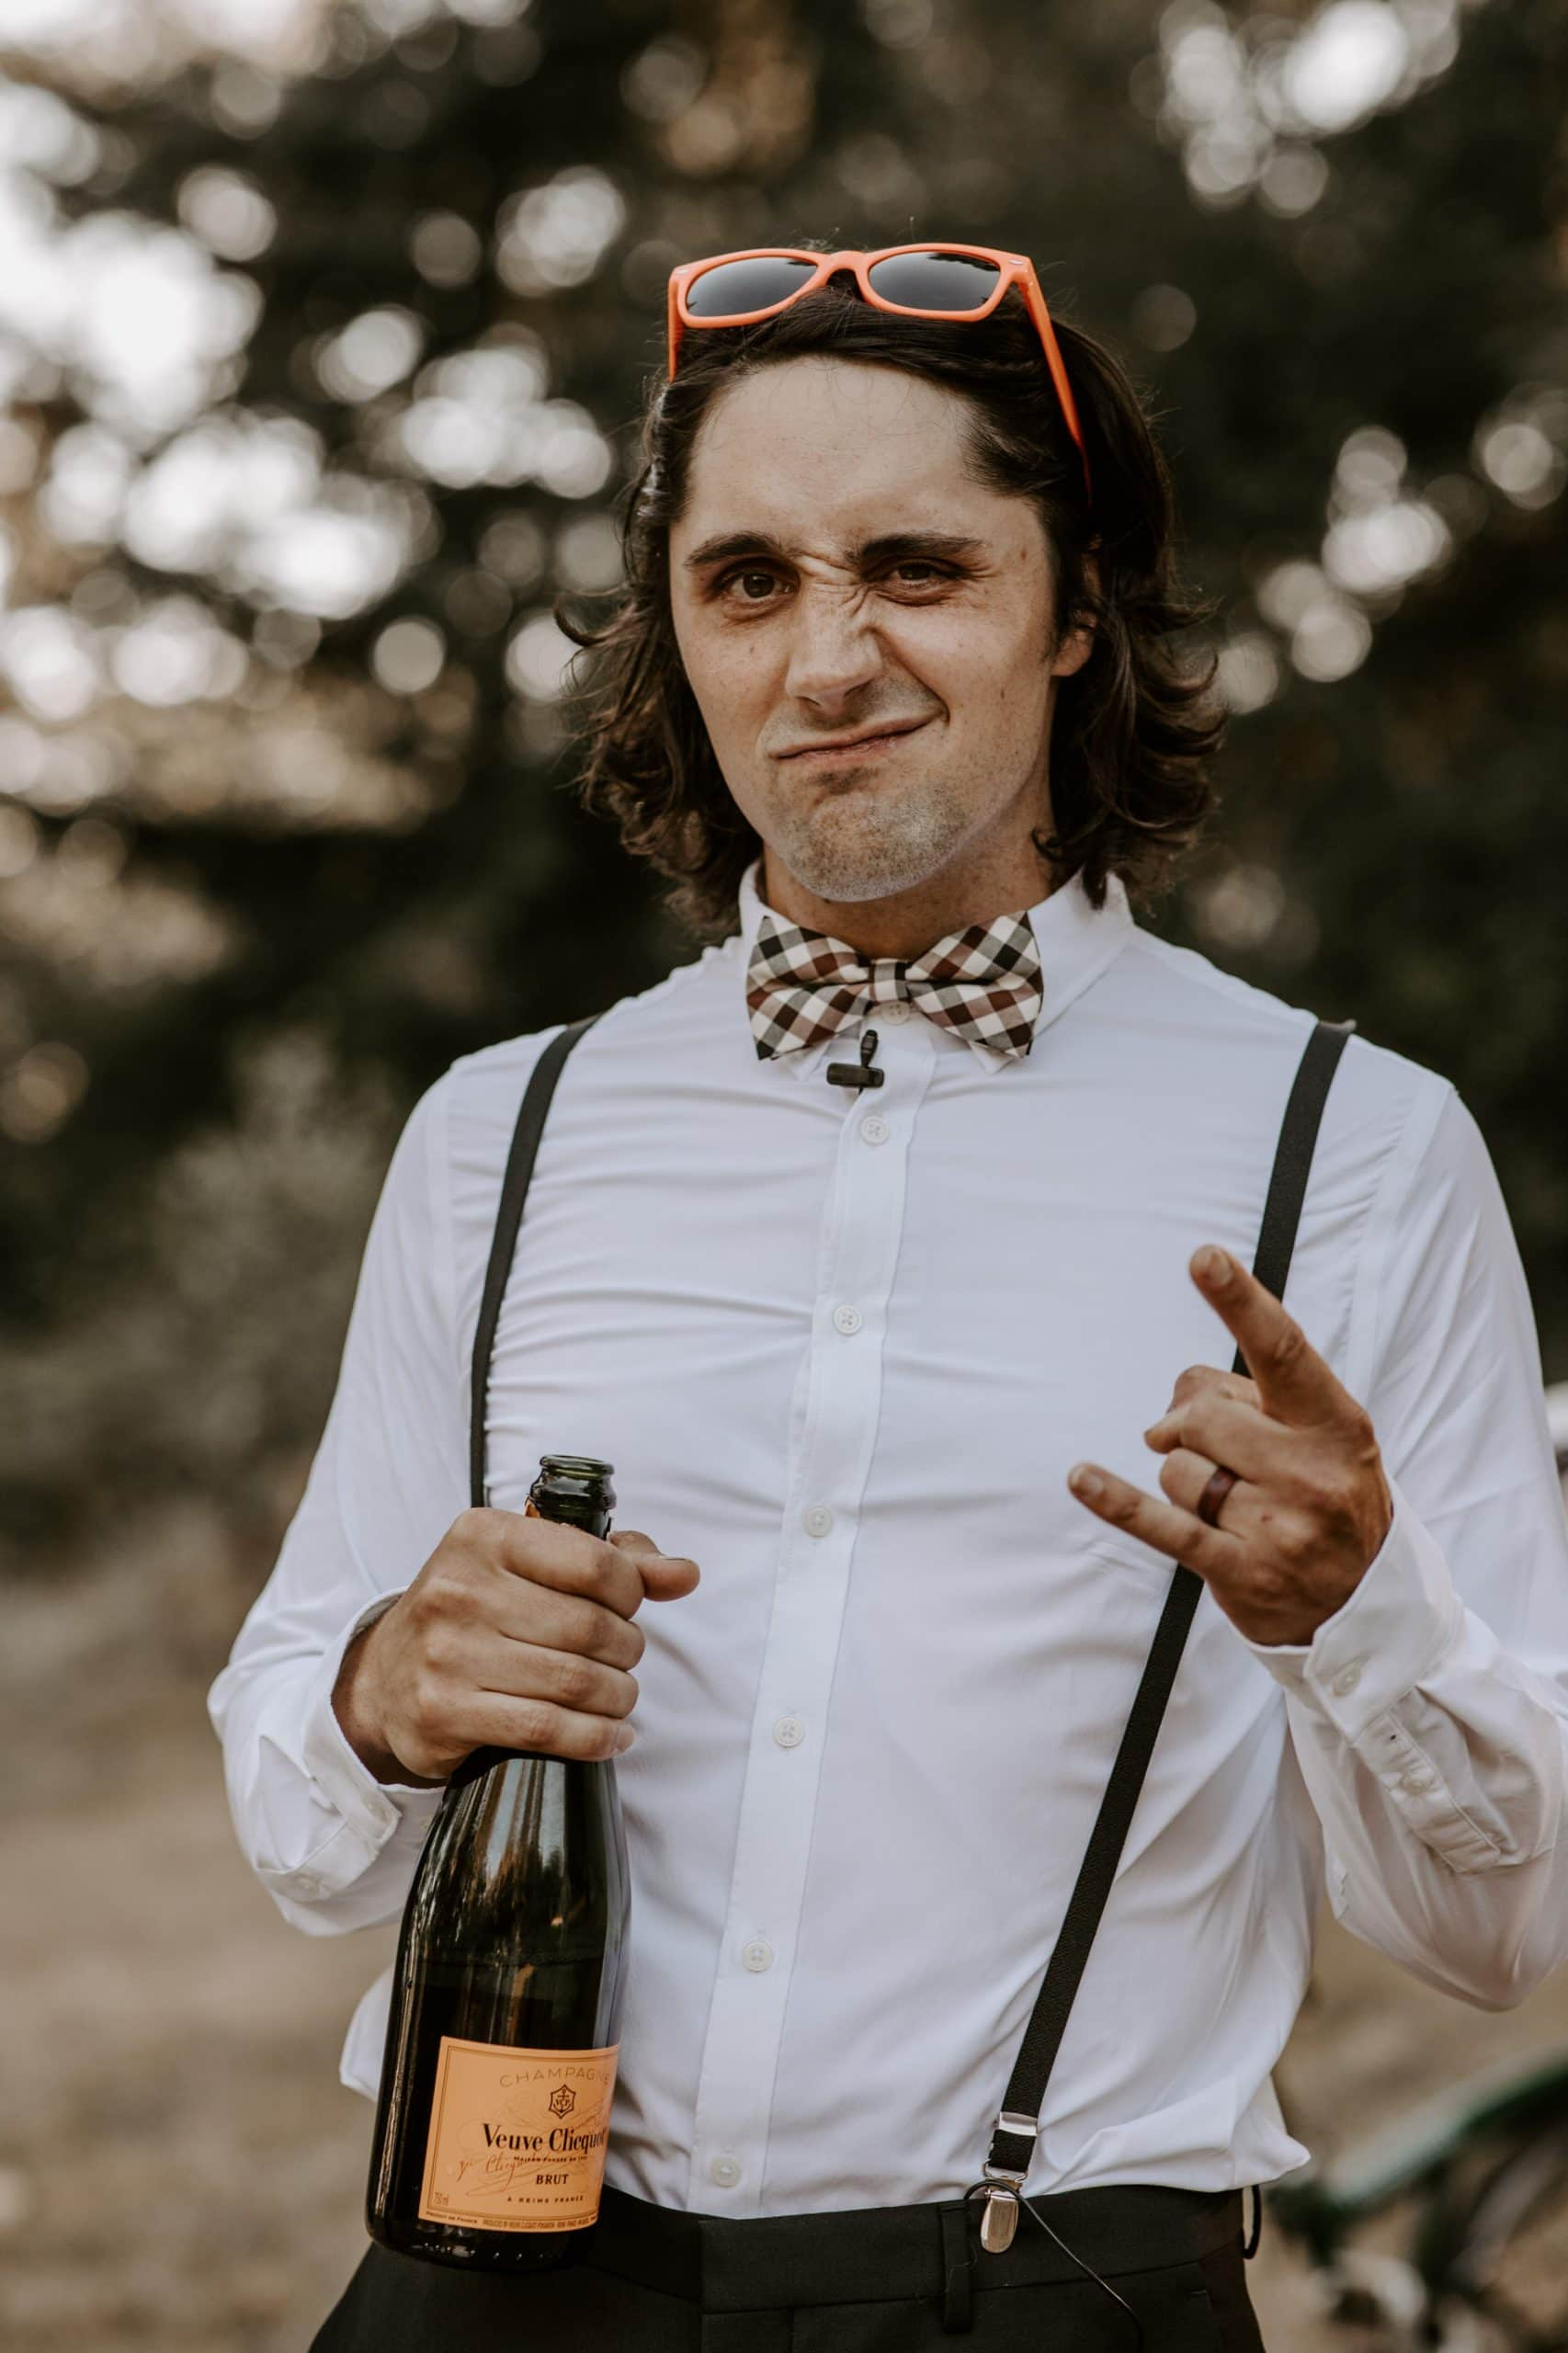 Groom holding champagne bottle and showing the rock-n-roll sign